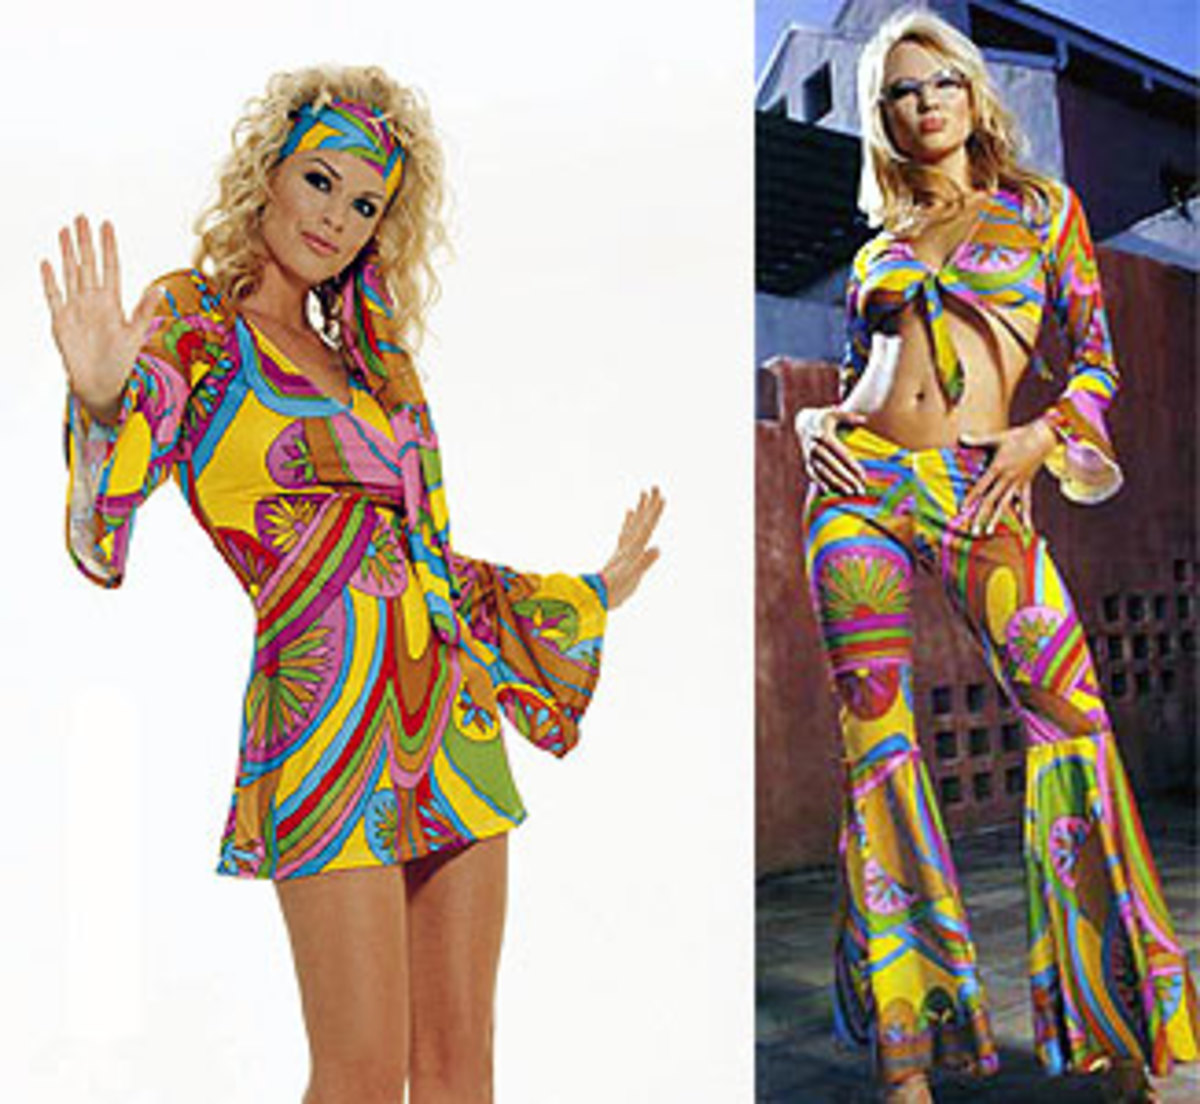 'The Hippy Look' included brightly coloured clothing and  unusual styles,such as bell-bottom pants